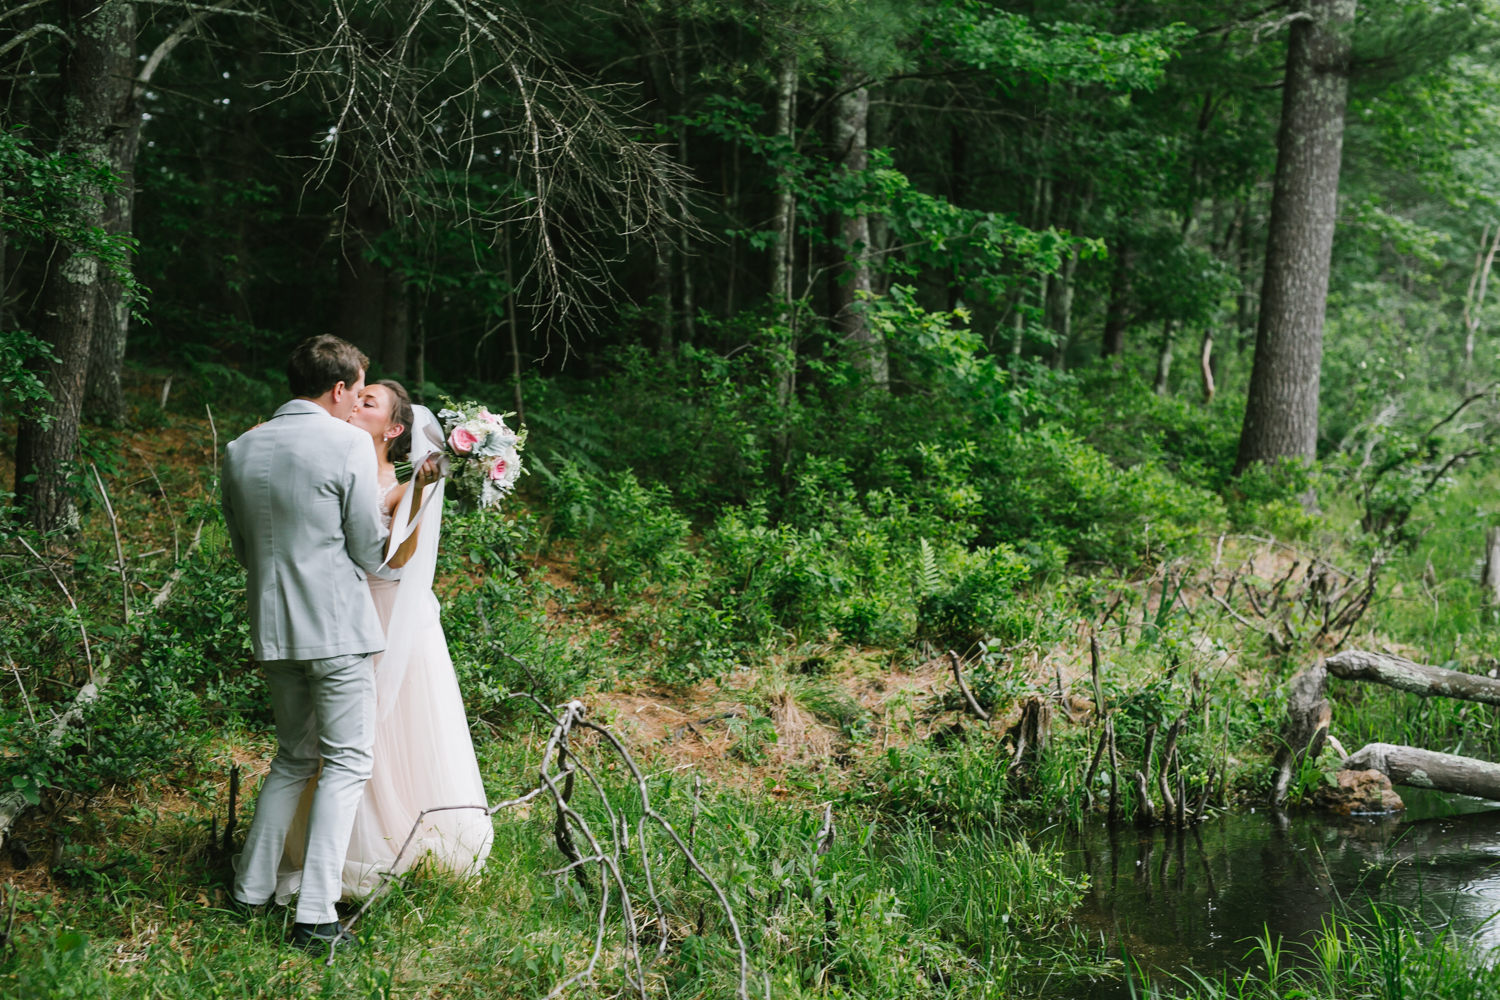 Emily Tebbetts Photography - back yard wedding gif atkinson nh confetti recessional bride and groom pizza truck -3.jpg